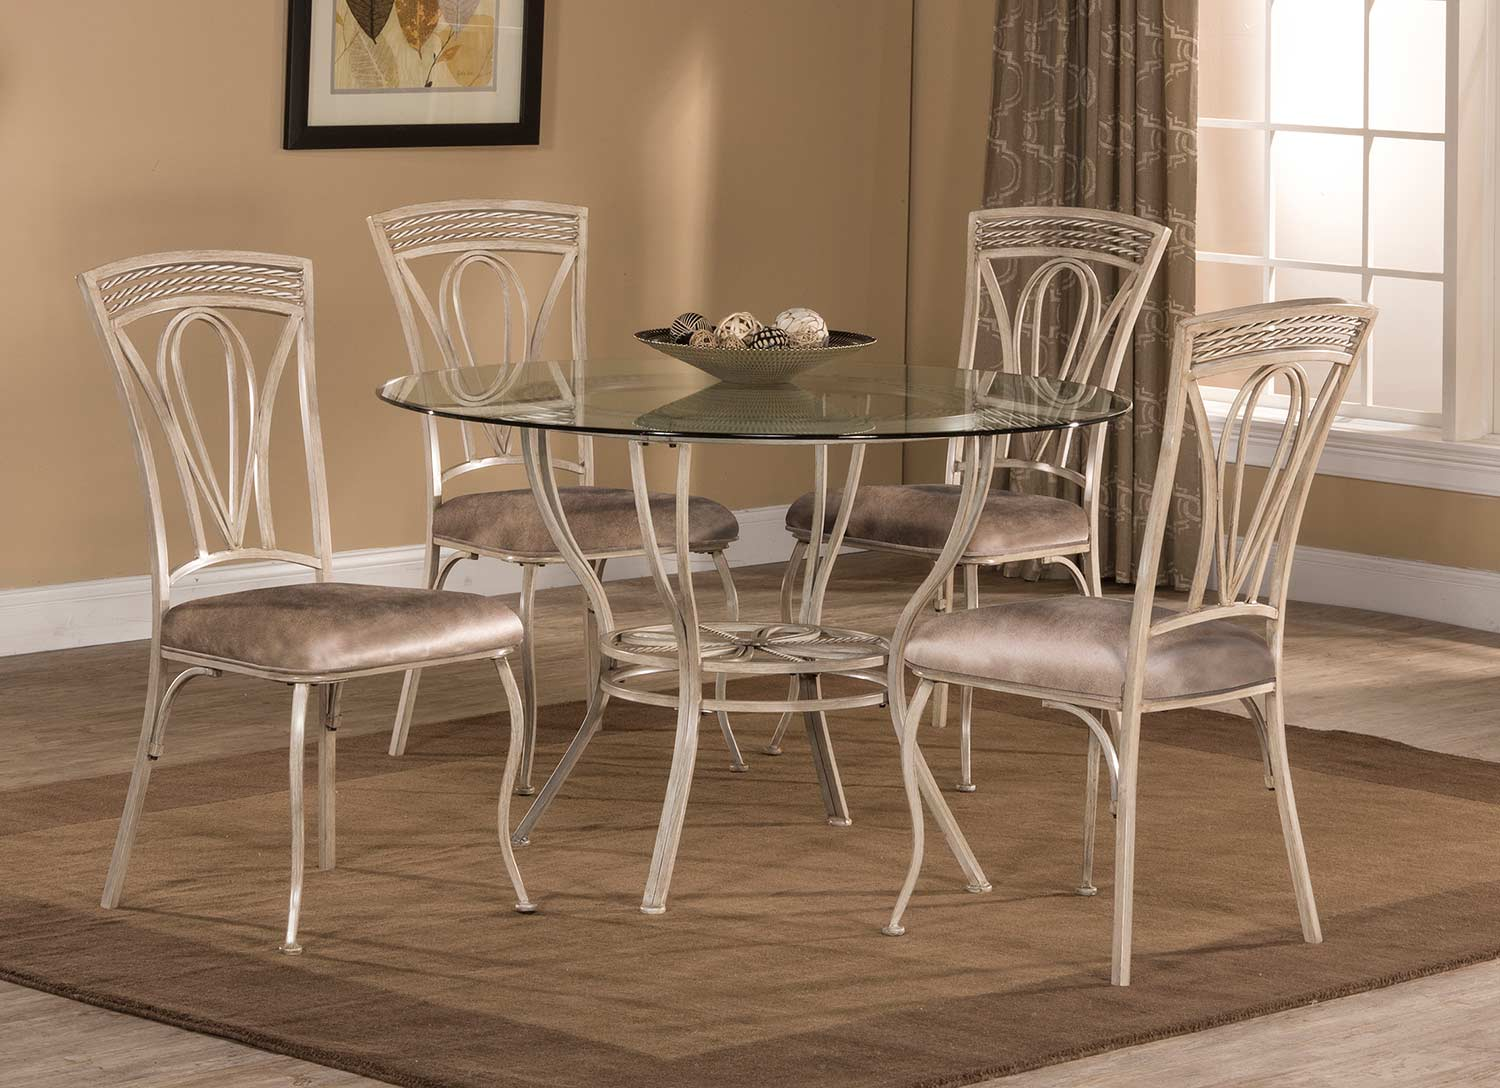 Hillsdale napier 5 piece round dining table set aged ivory 5986dtbs5 hillsdalefurnituremart com